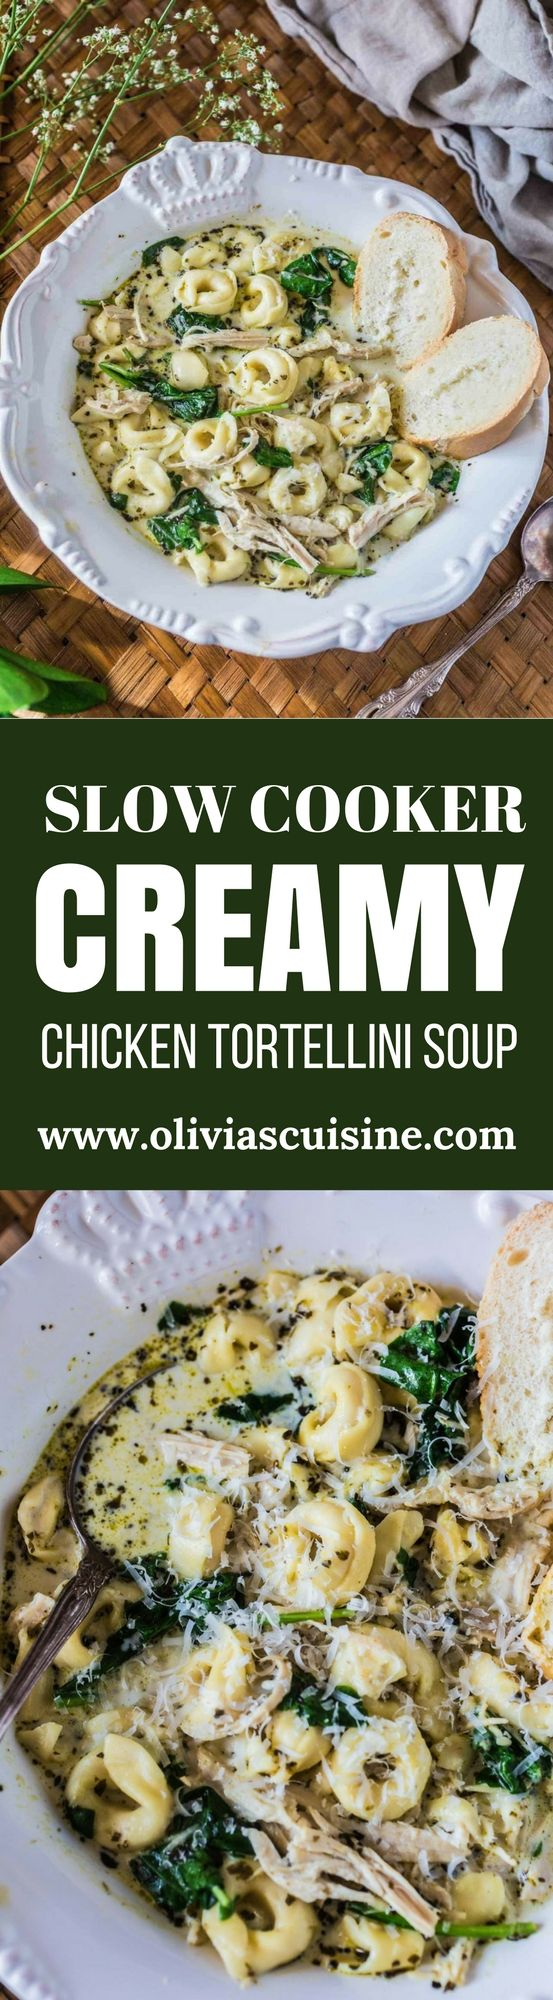 Creamy Chicken Tortellini Soup | www.oliviascuisine.com | You won't believe how easy this Creamy Chicken Tortellini Soup is! Hearty, comforting and made in the slow cooker. It really doesn't get easier than that! (Sponsored by Barilla®) #BarillaPesto #BJsWholesale #BarillaTortellini @BarillaUS